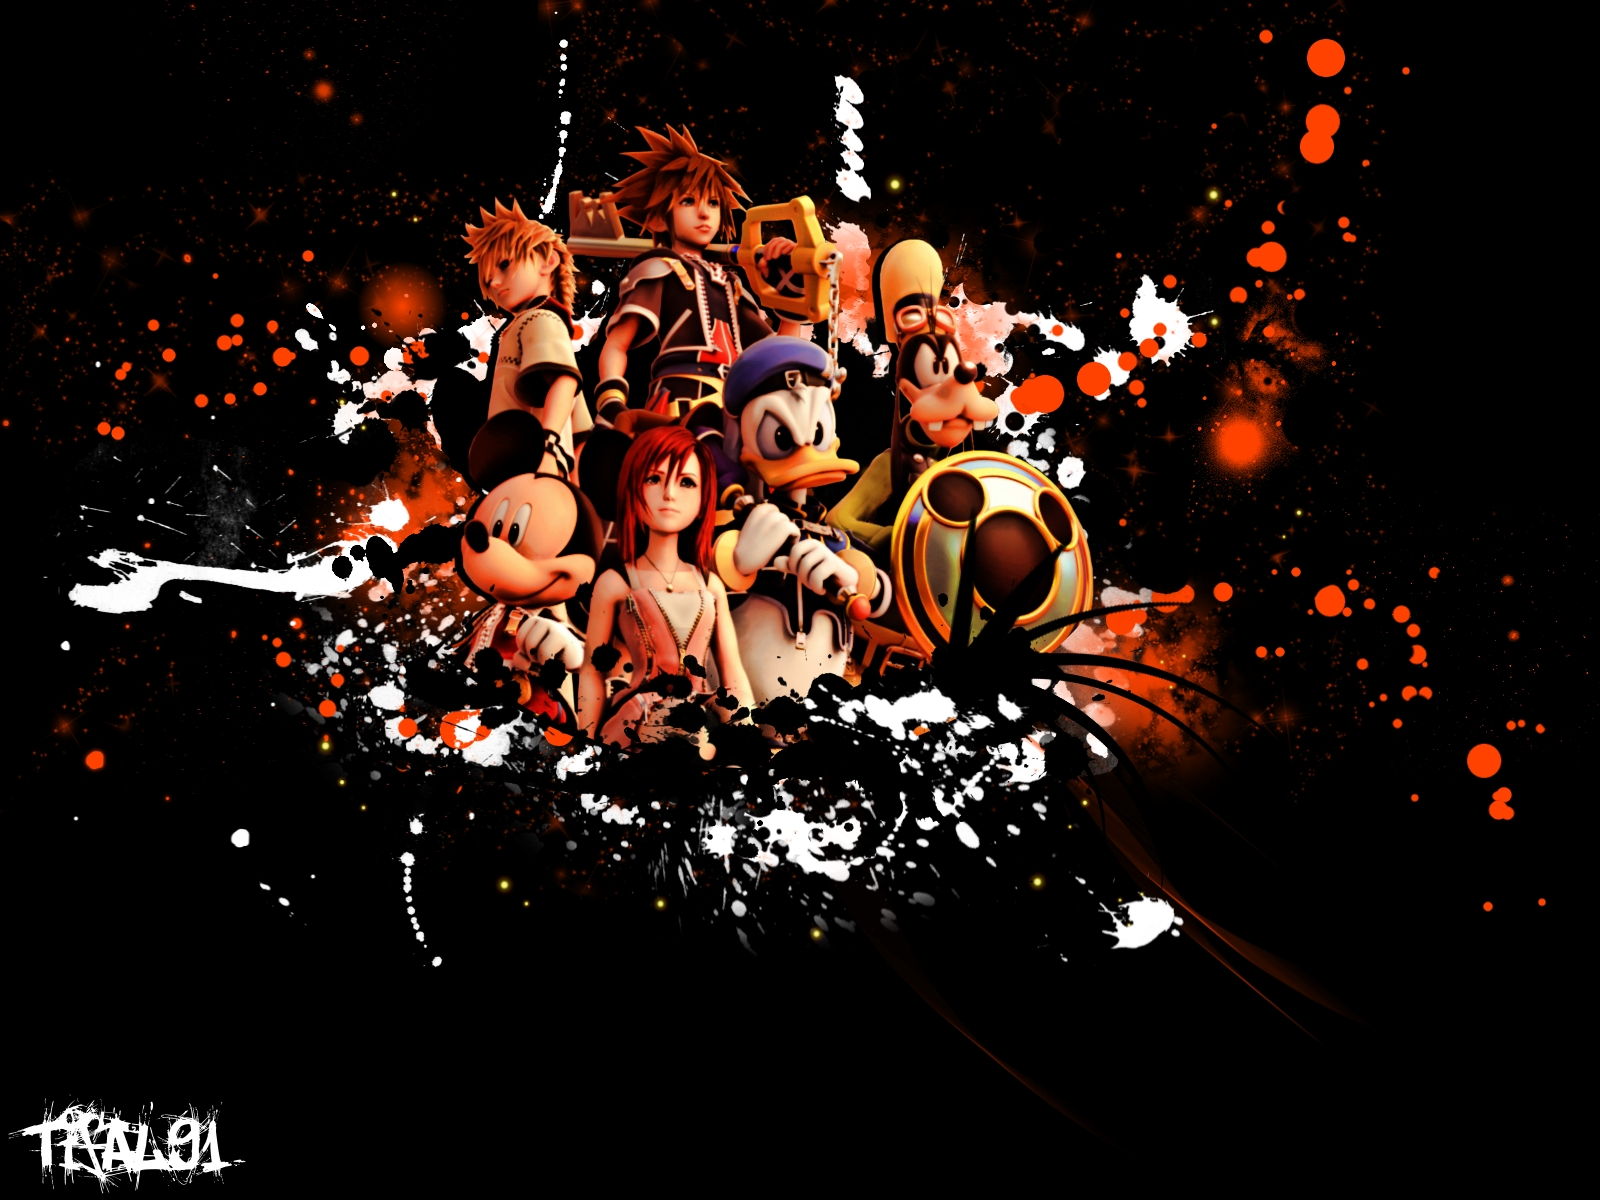 Kingdom Hearts Heartless 1600x1200